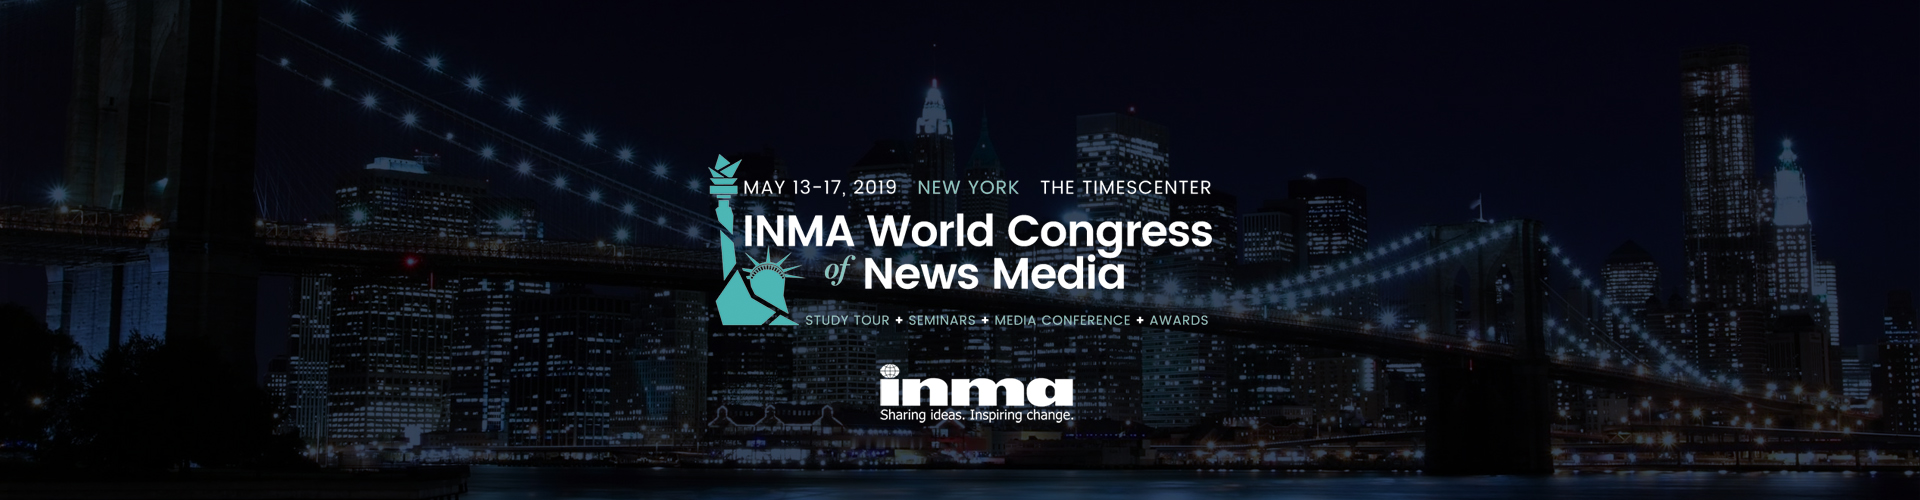 Image of PageSuite Are Heading to New York for the INMA World Congress